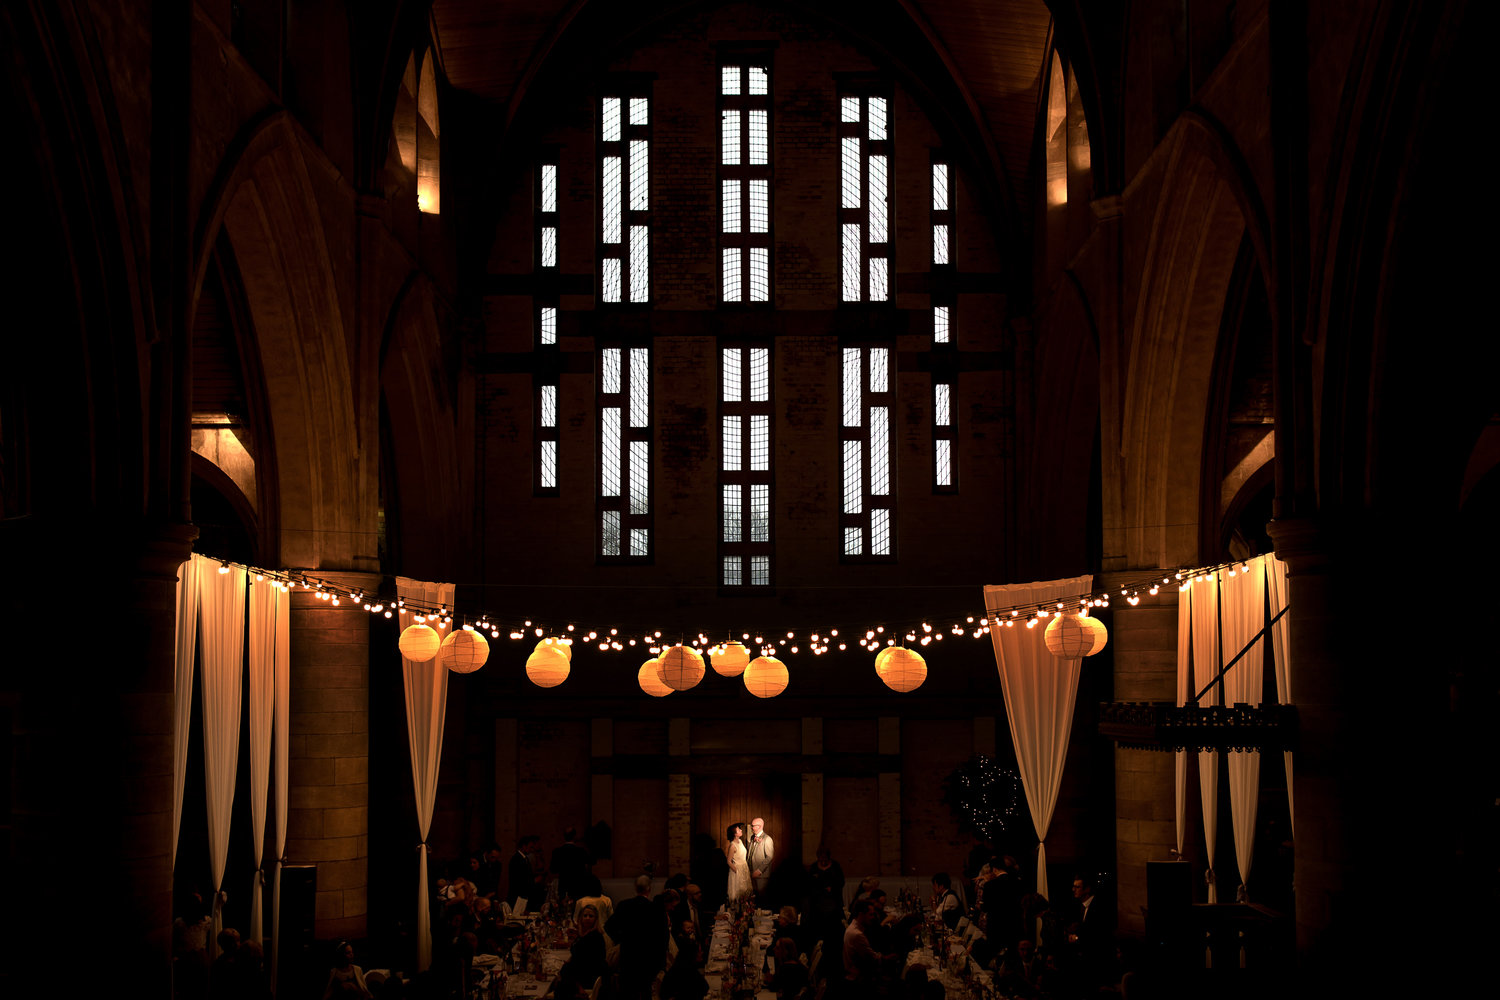 A portrait of a bride and groom in a spotlight by a large church window